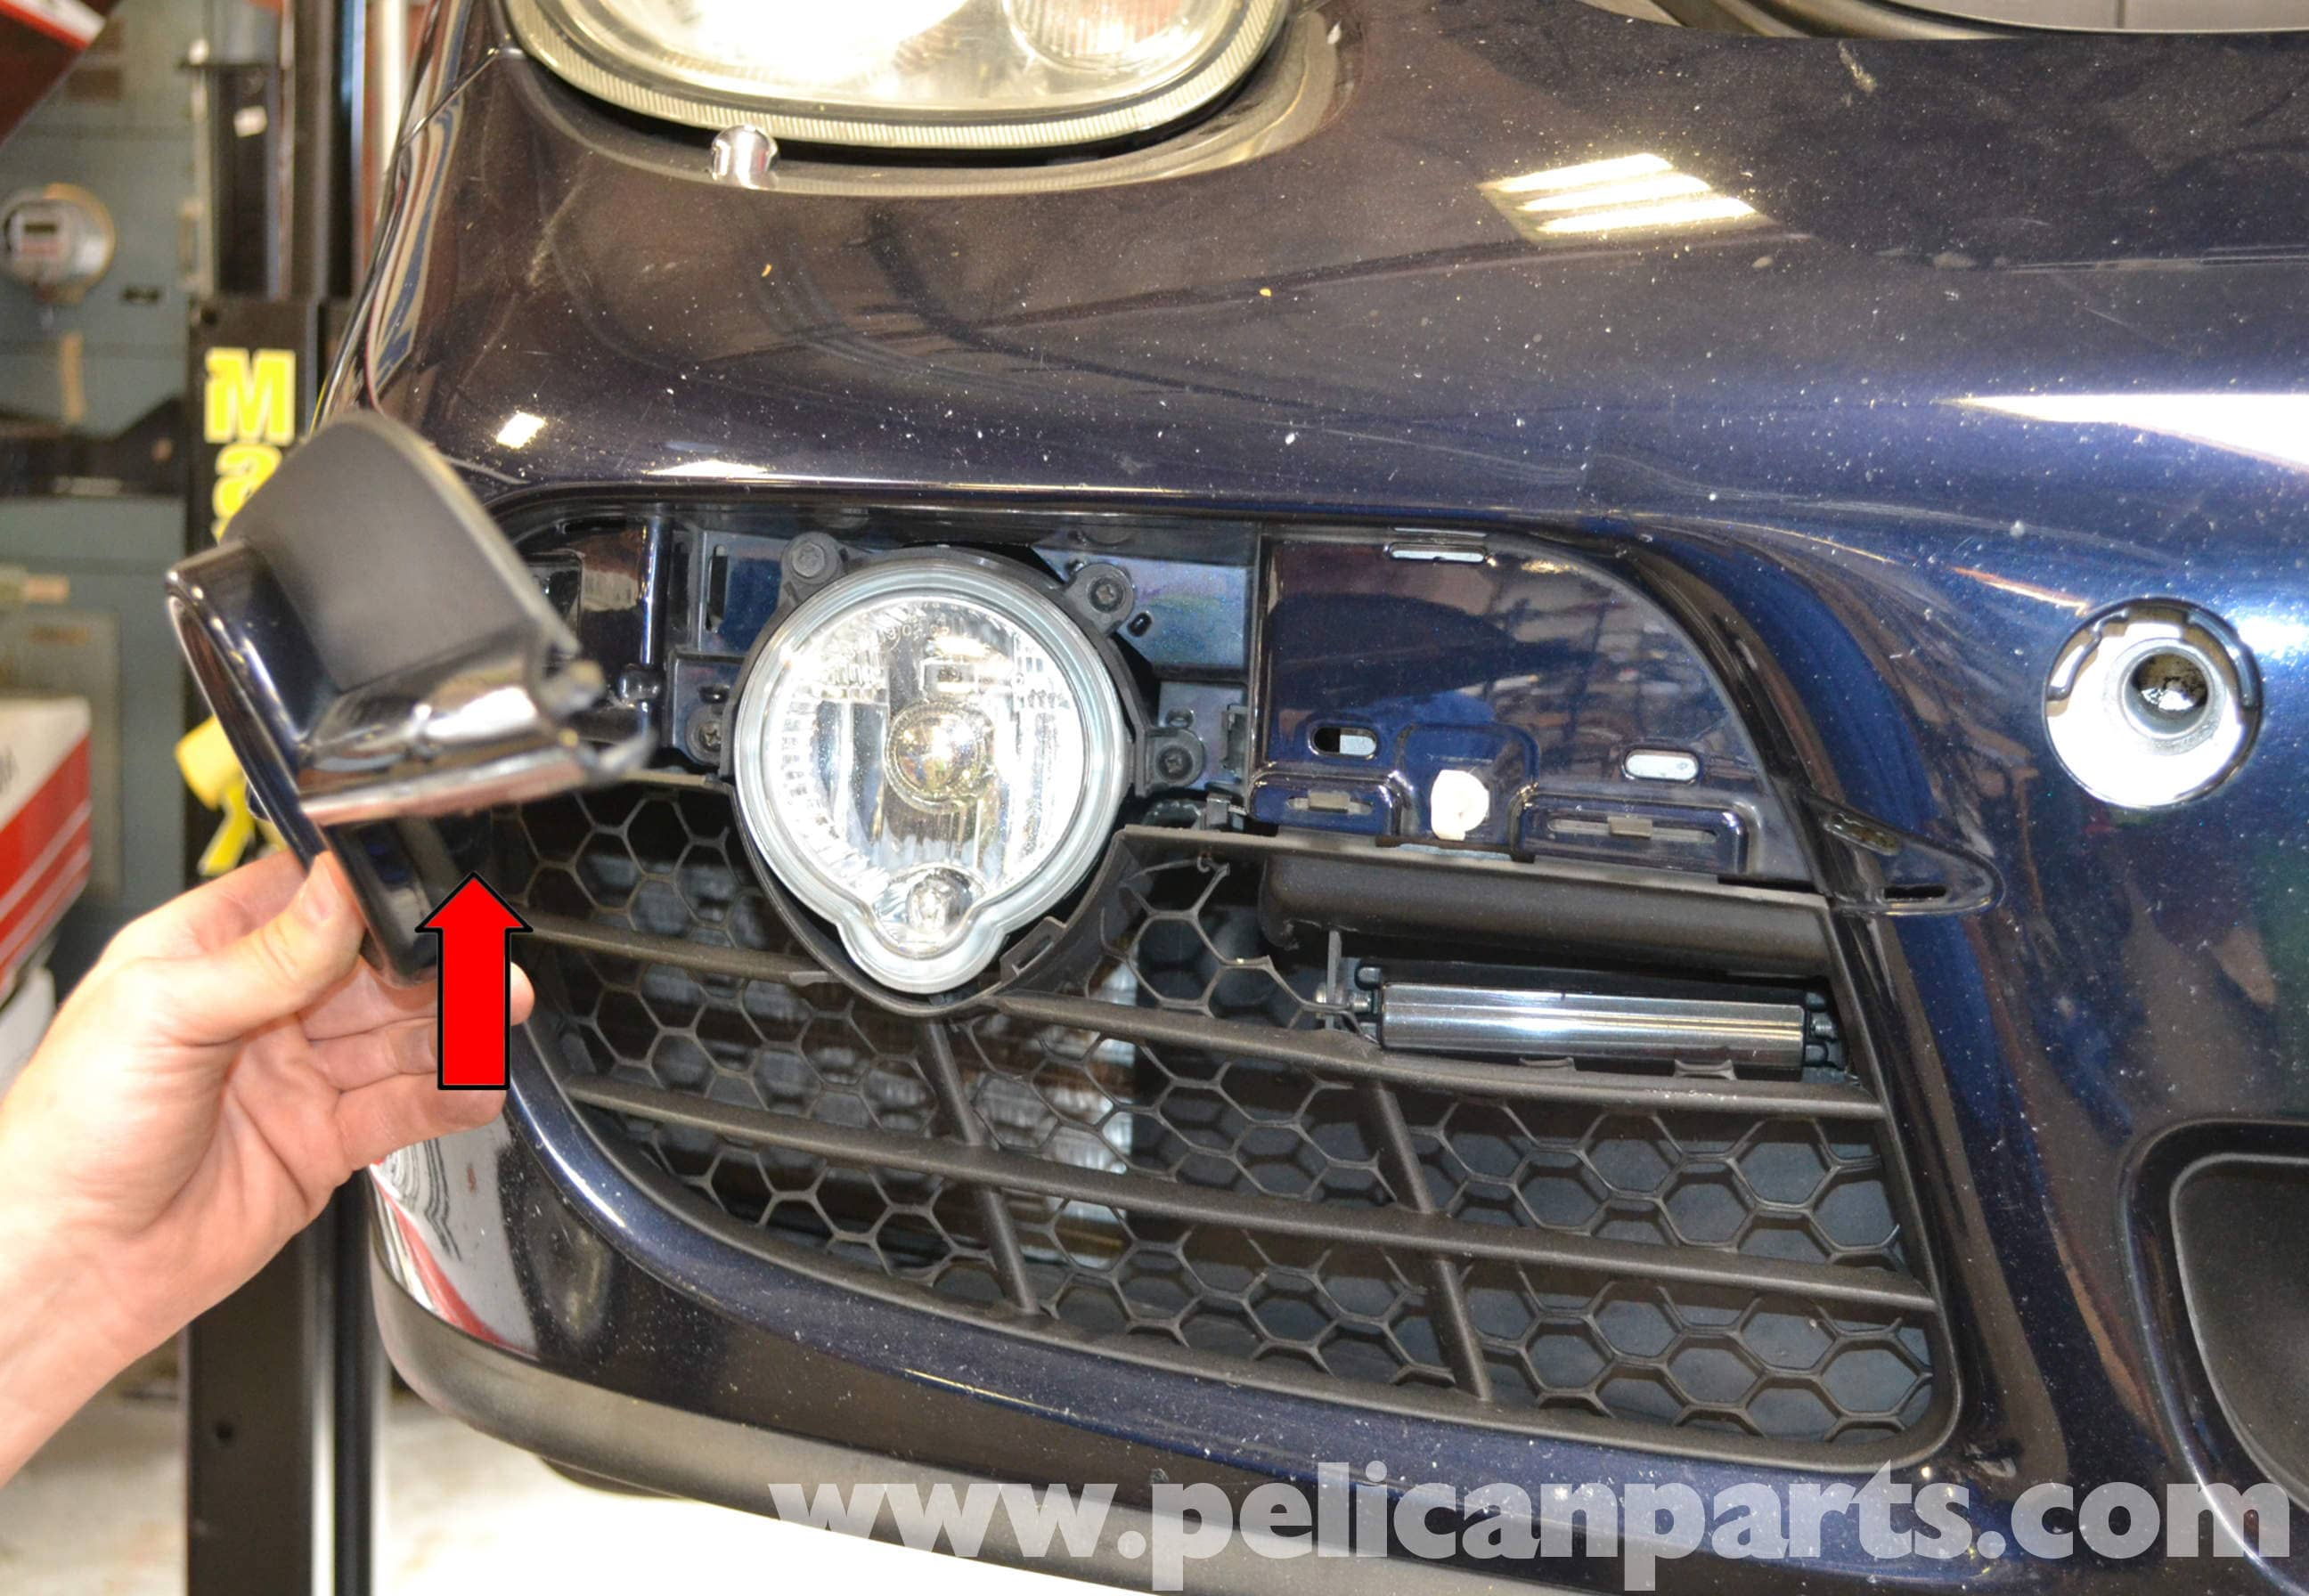 Pelican Technical Article Porsche Cayman Fog Light Bulb And Lights Wiring Diagram Large Image Extra